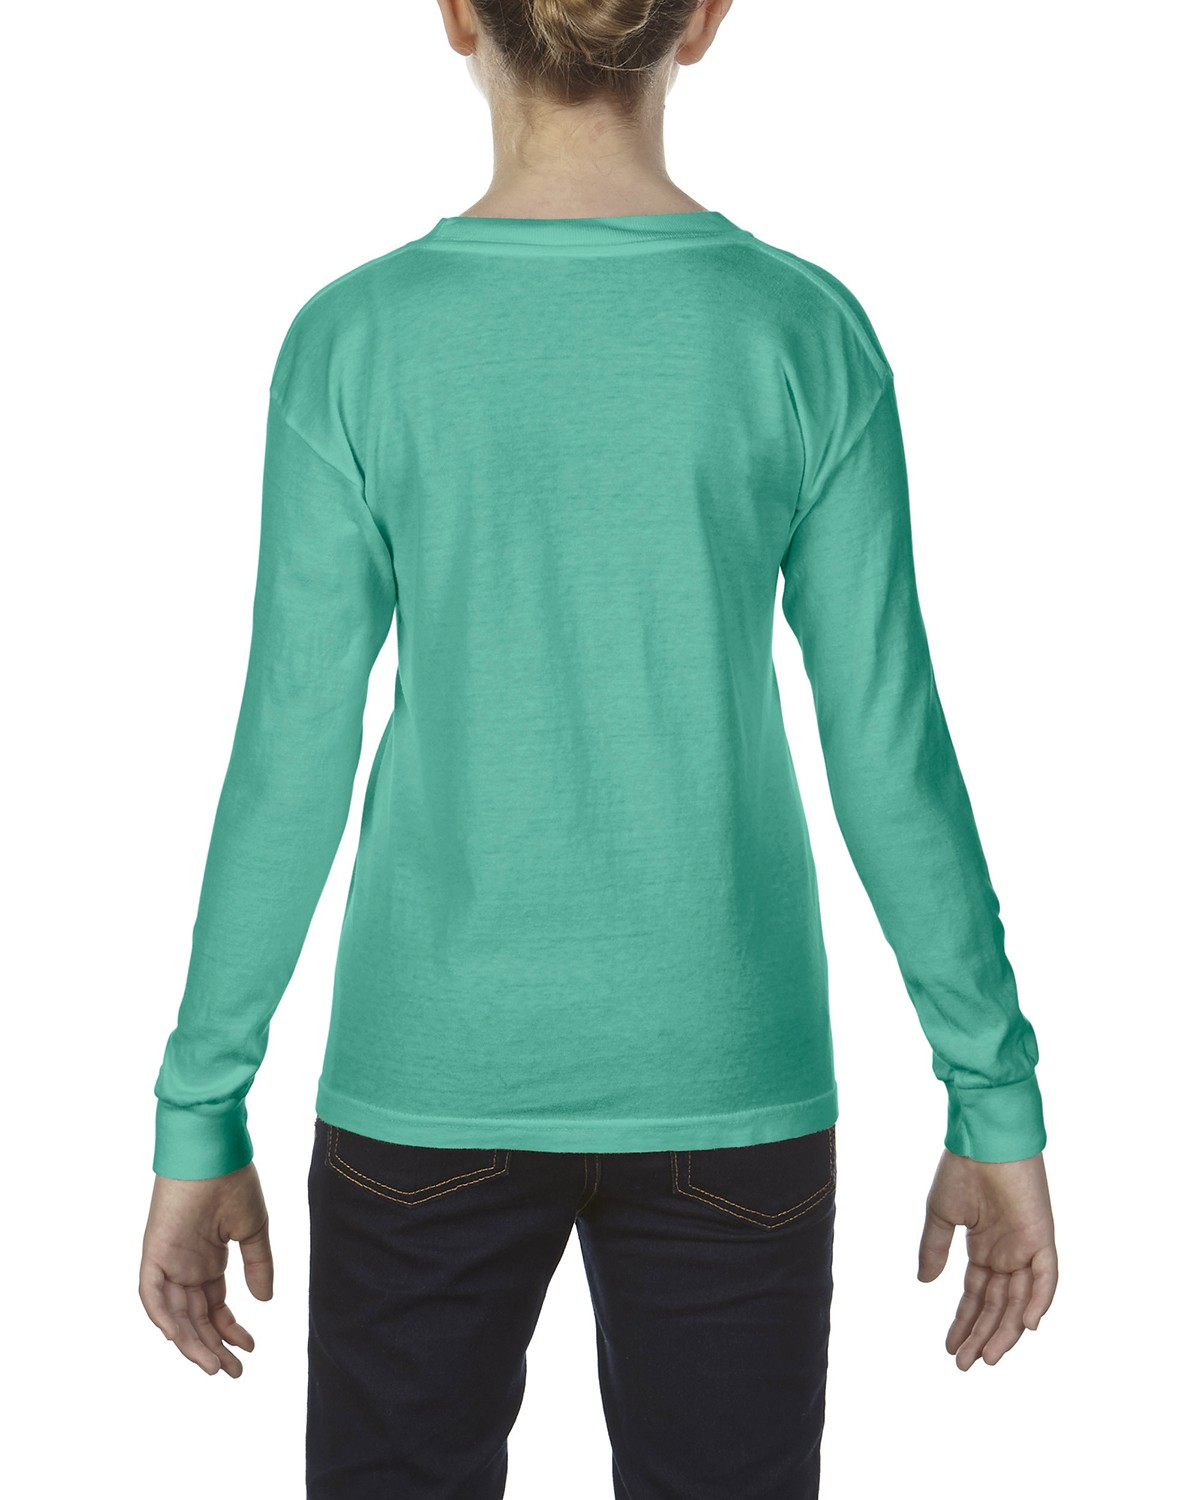 C3483 Comfort Colors Drop Ship ISLAND GREEN